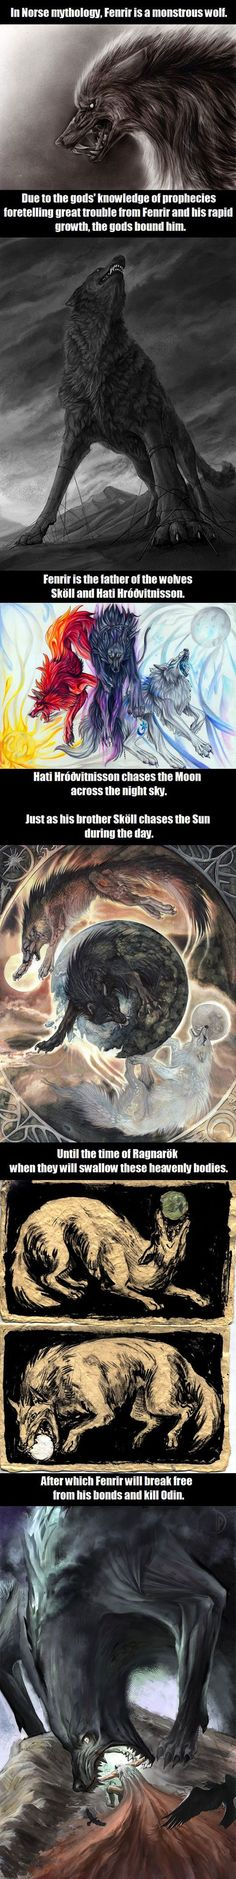 I think I need to read more into Norse Mythology--- Norse Mythology is the bomb: